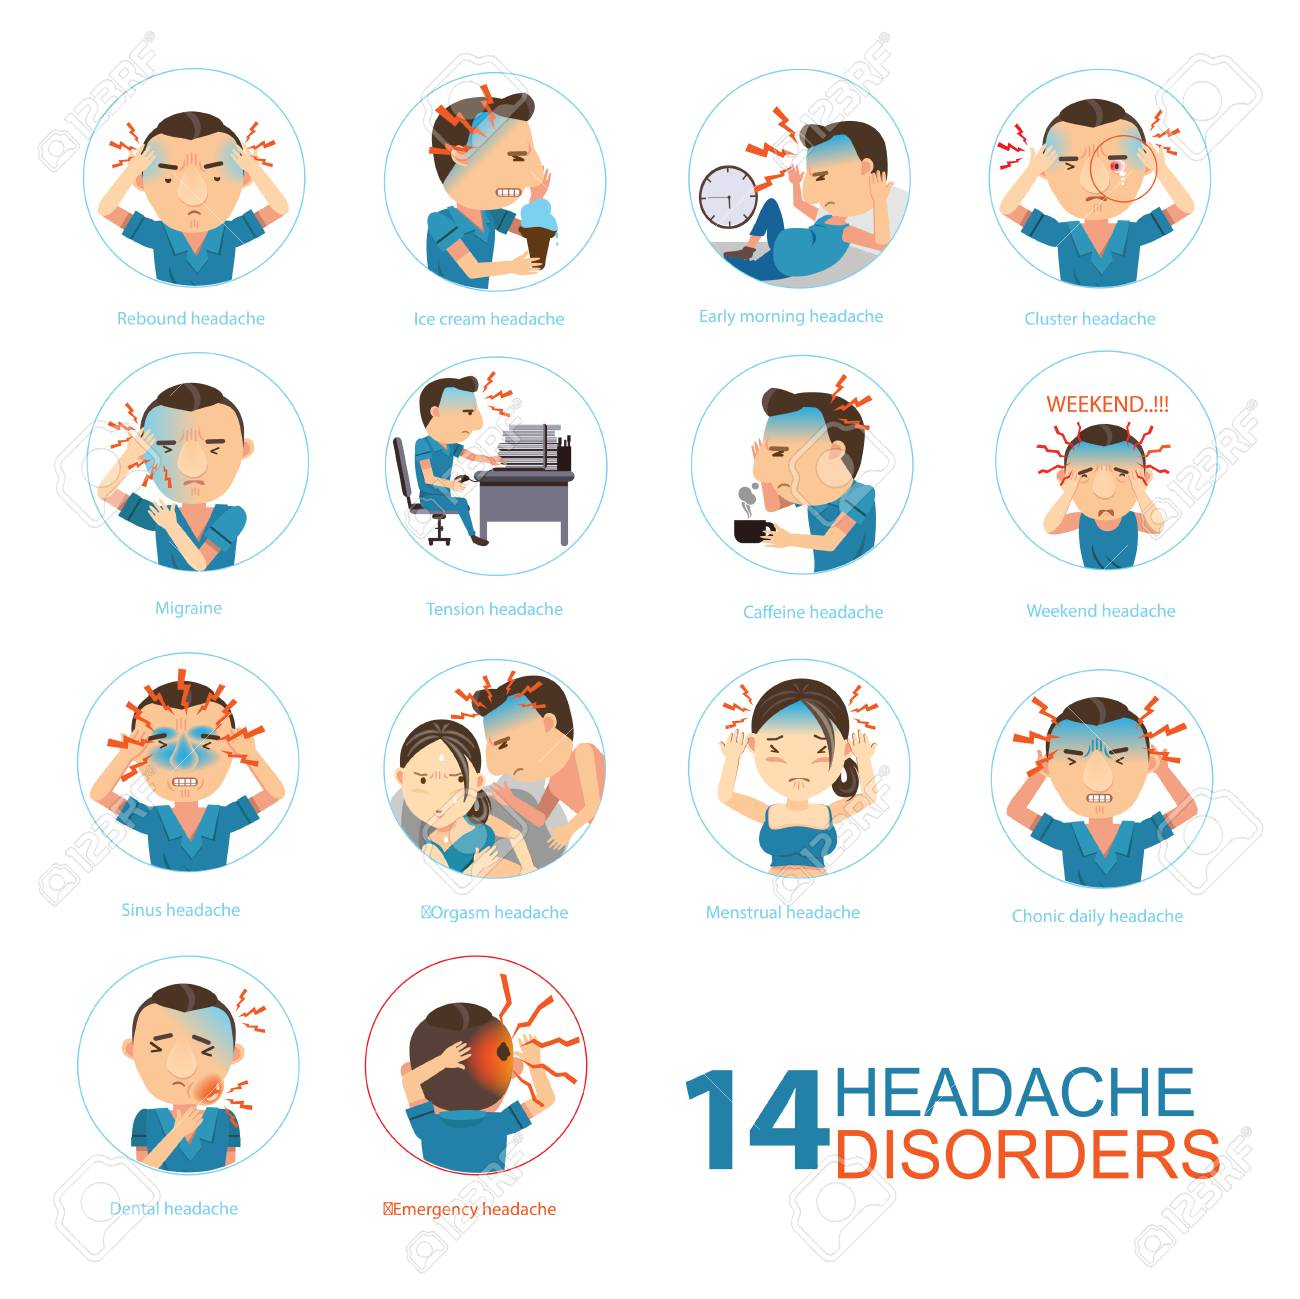 Headache disorder Infographics in circle. Vector illustrations - 91472838